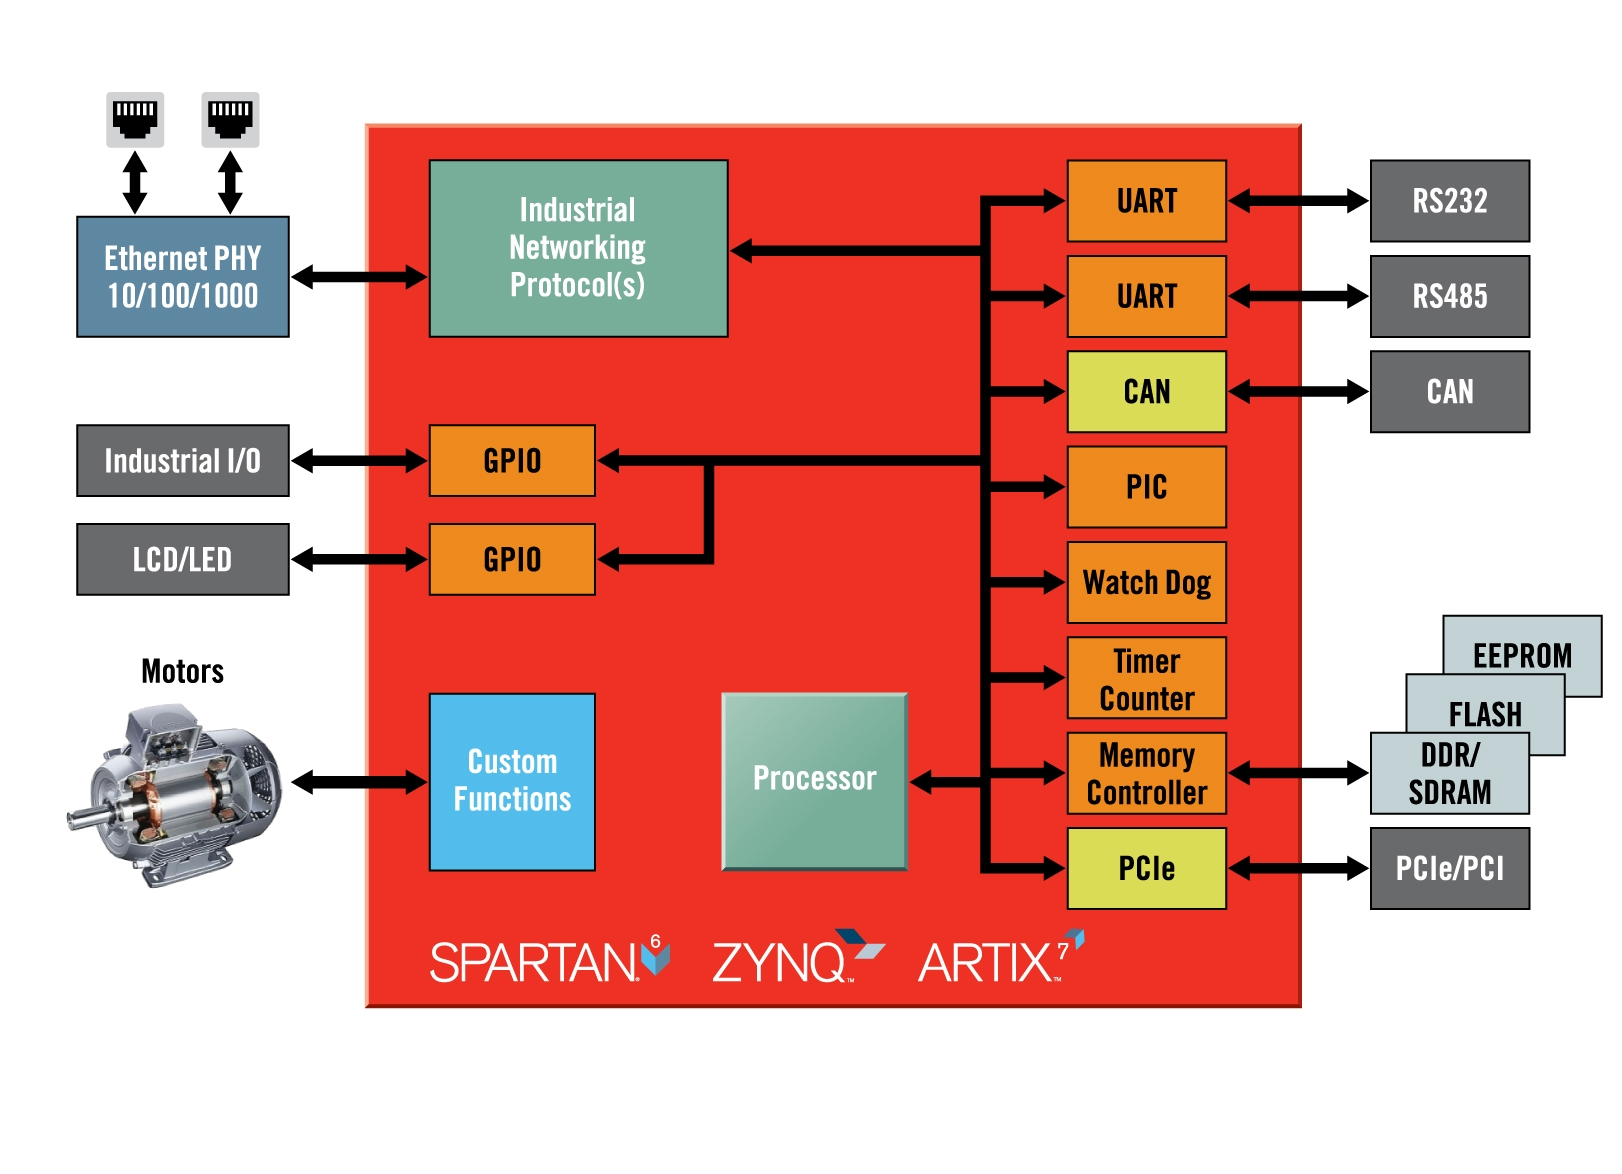 hight resolution of xilinx expands targeted design platforms for industrial networking and motor control applications